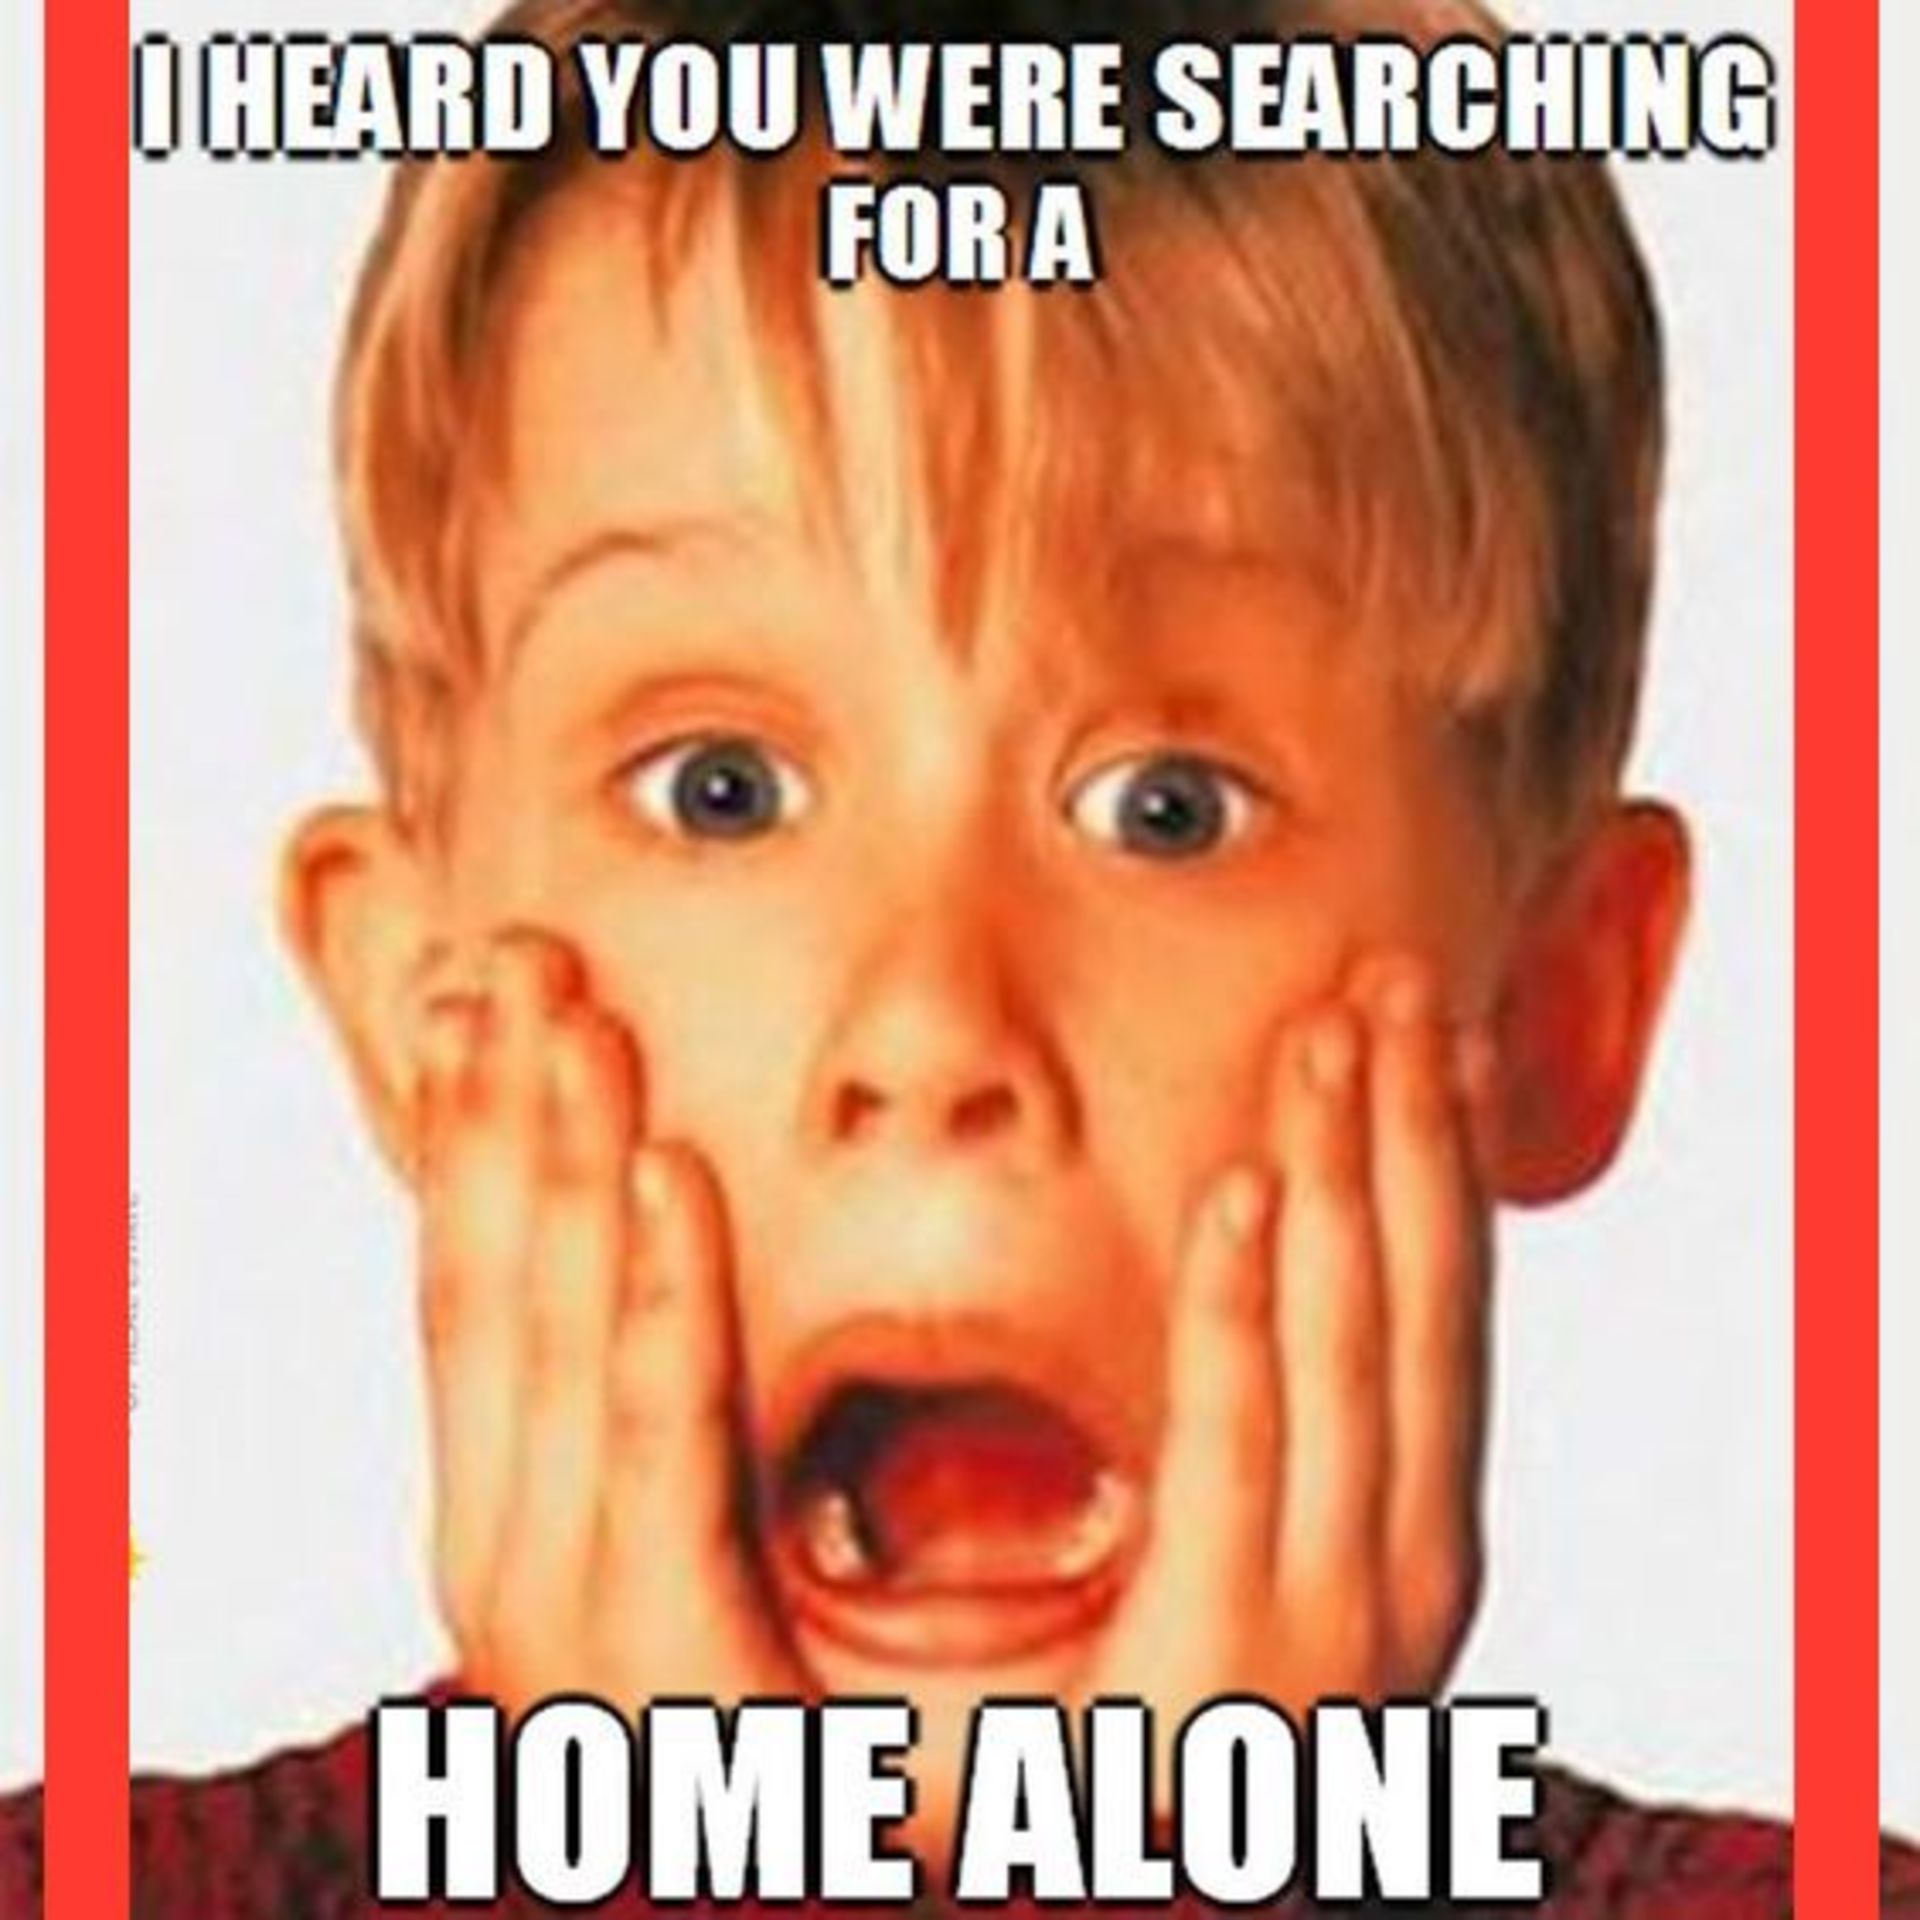 Not a home alone!!